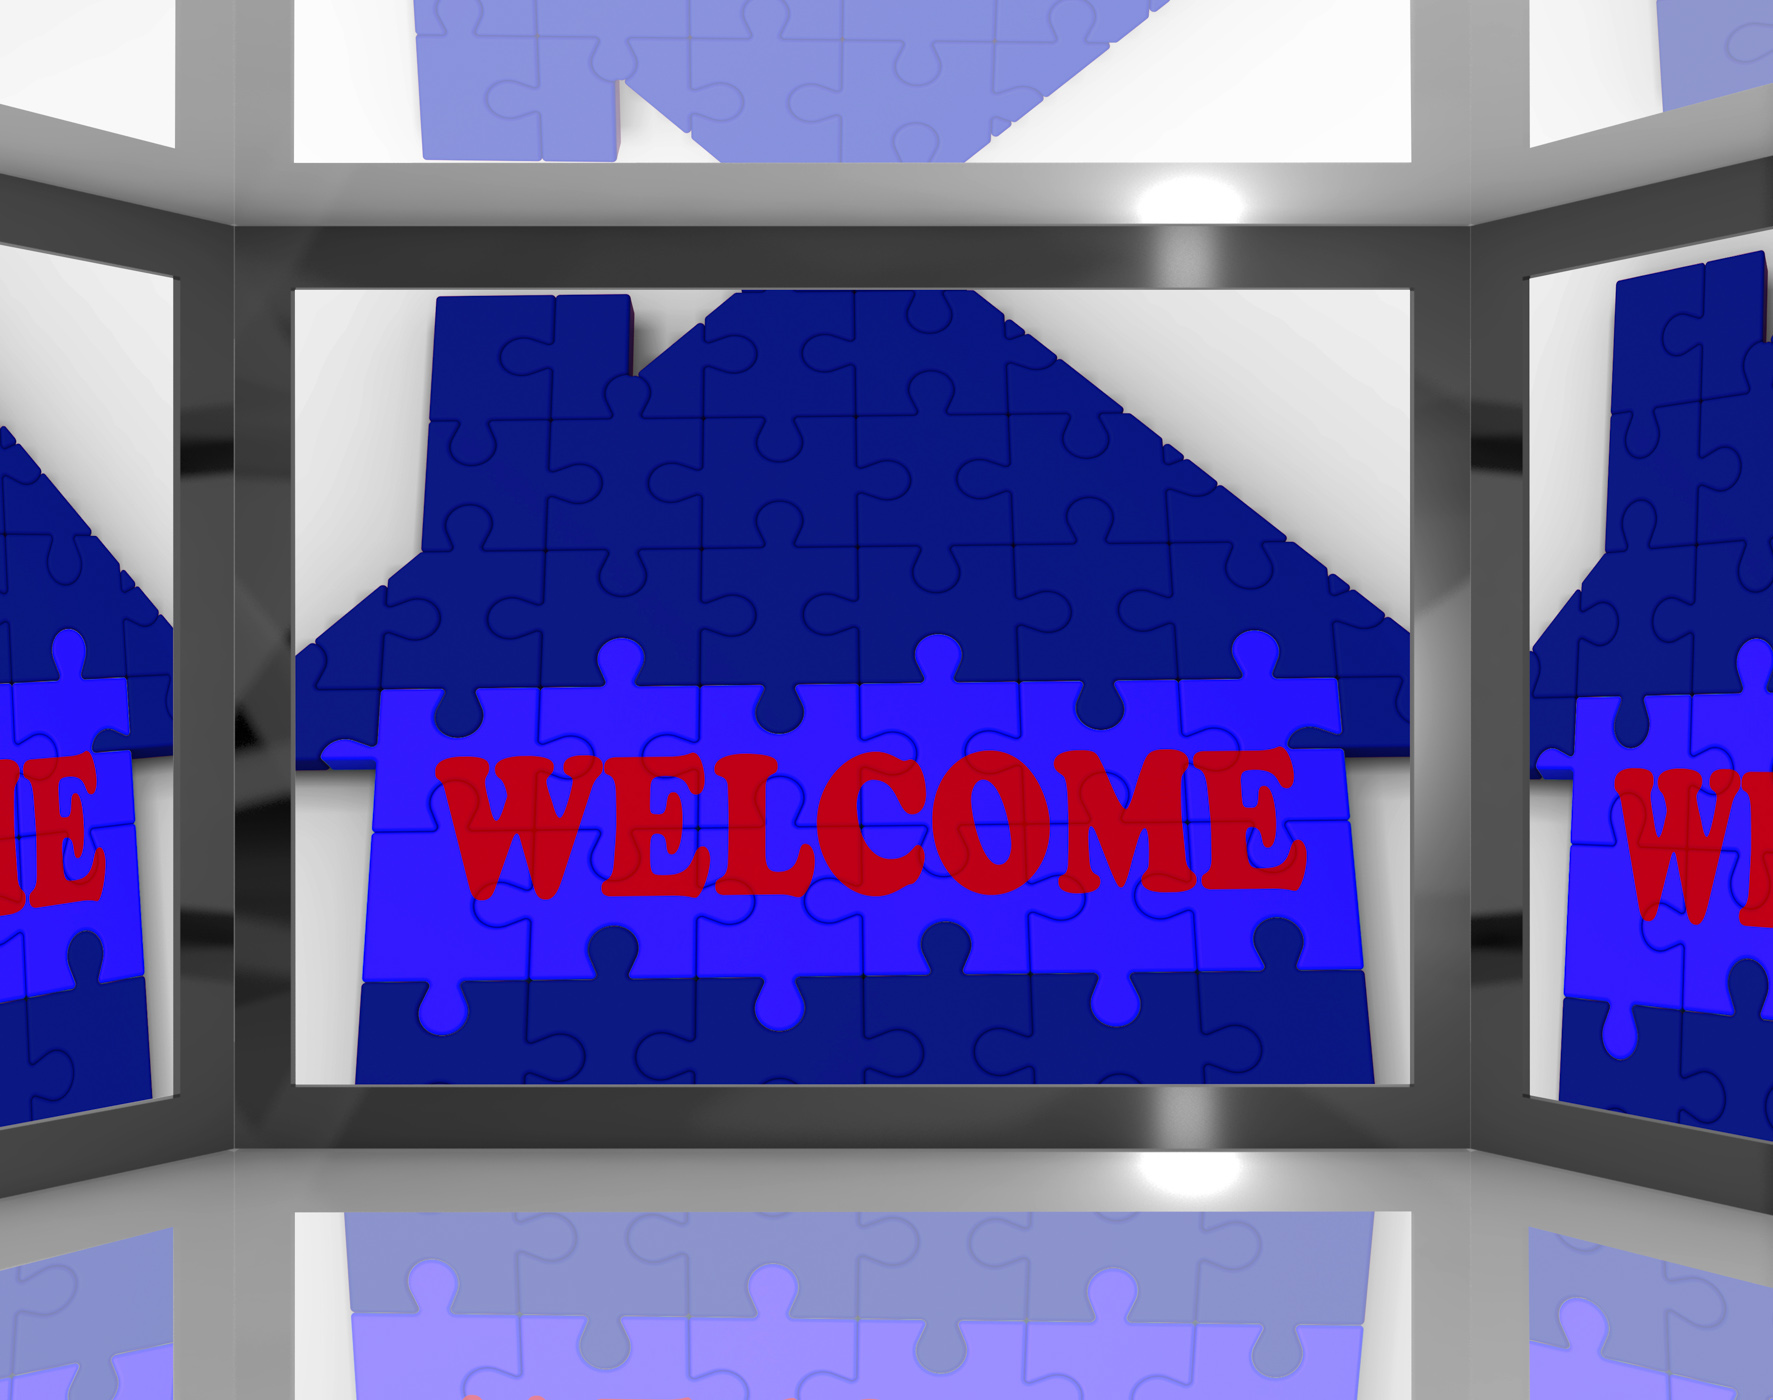 Welcome house on screen showing welcoming guests photo